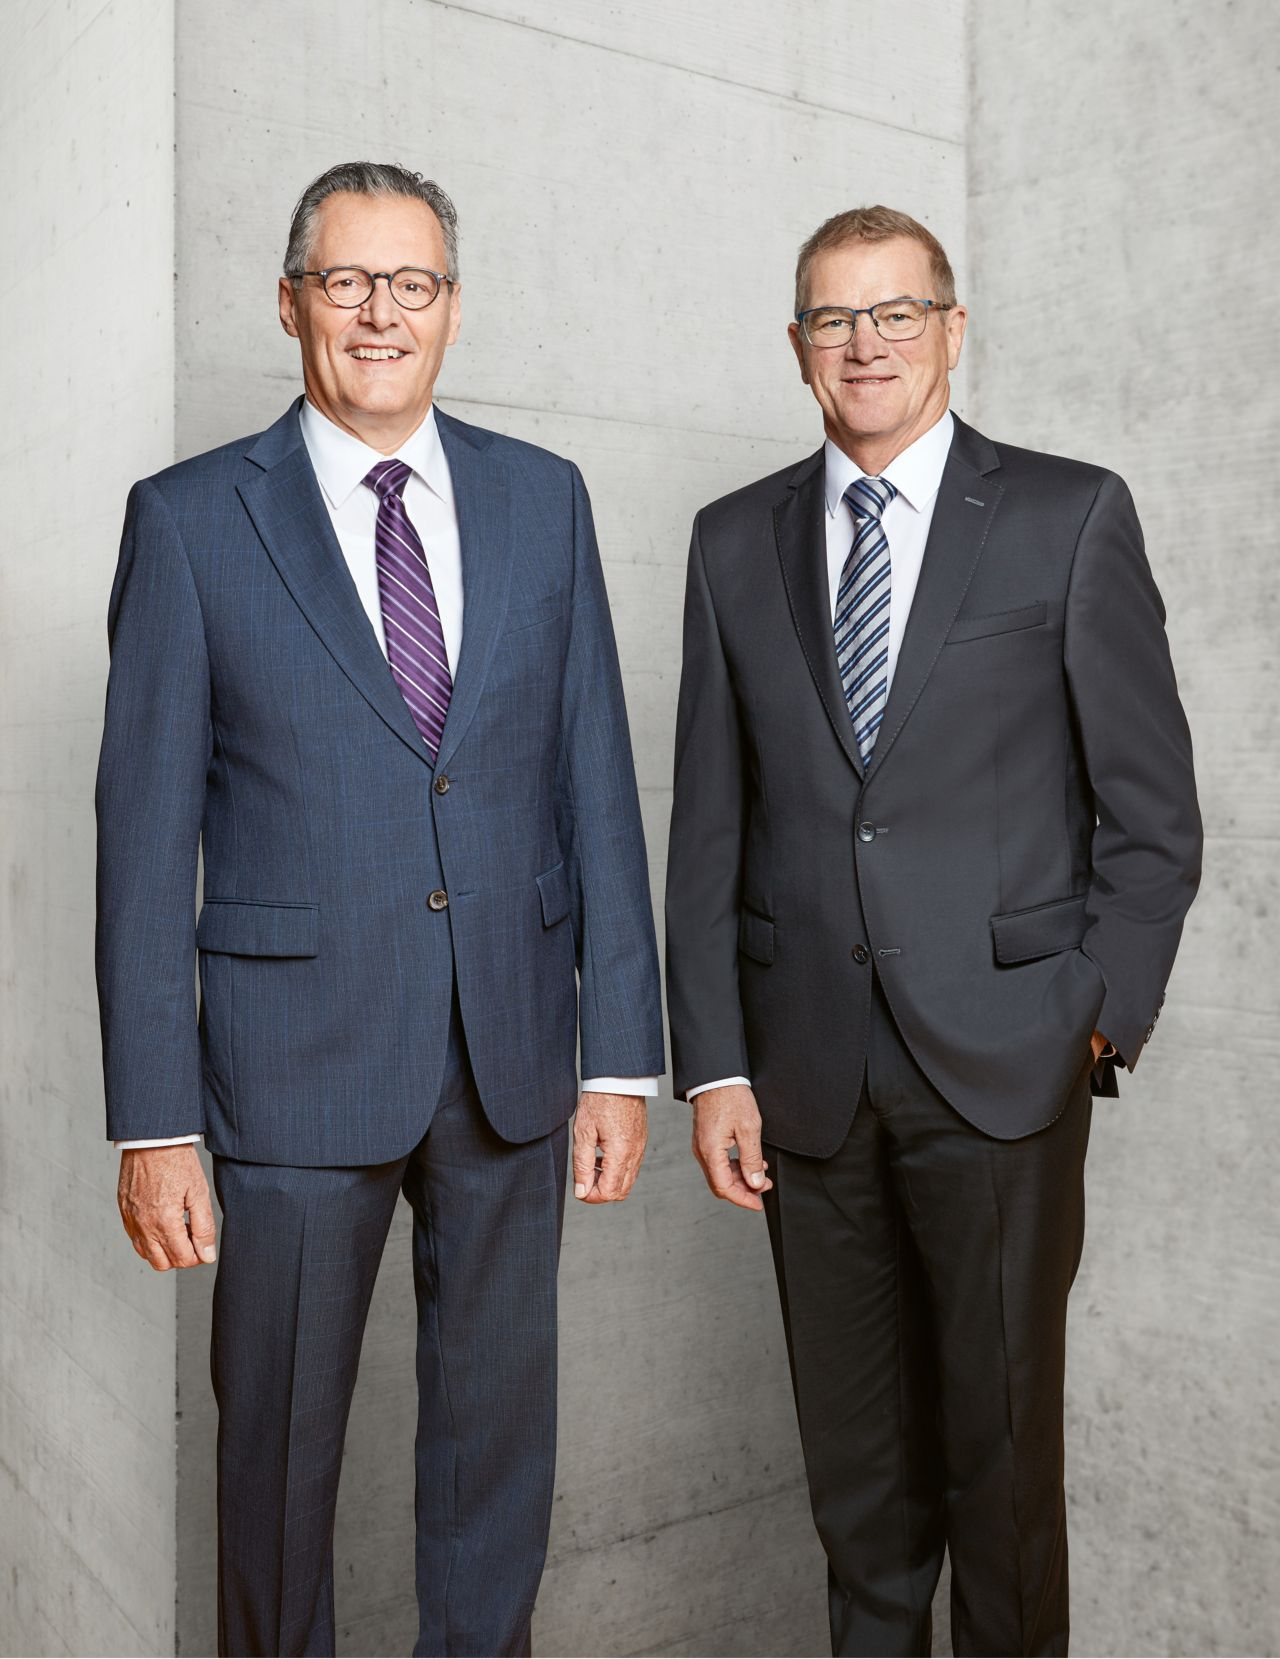 Dr. Paul J. Haelg, Chairman of the Board of Directors and Paul Schuler, CEO